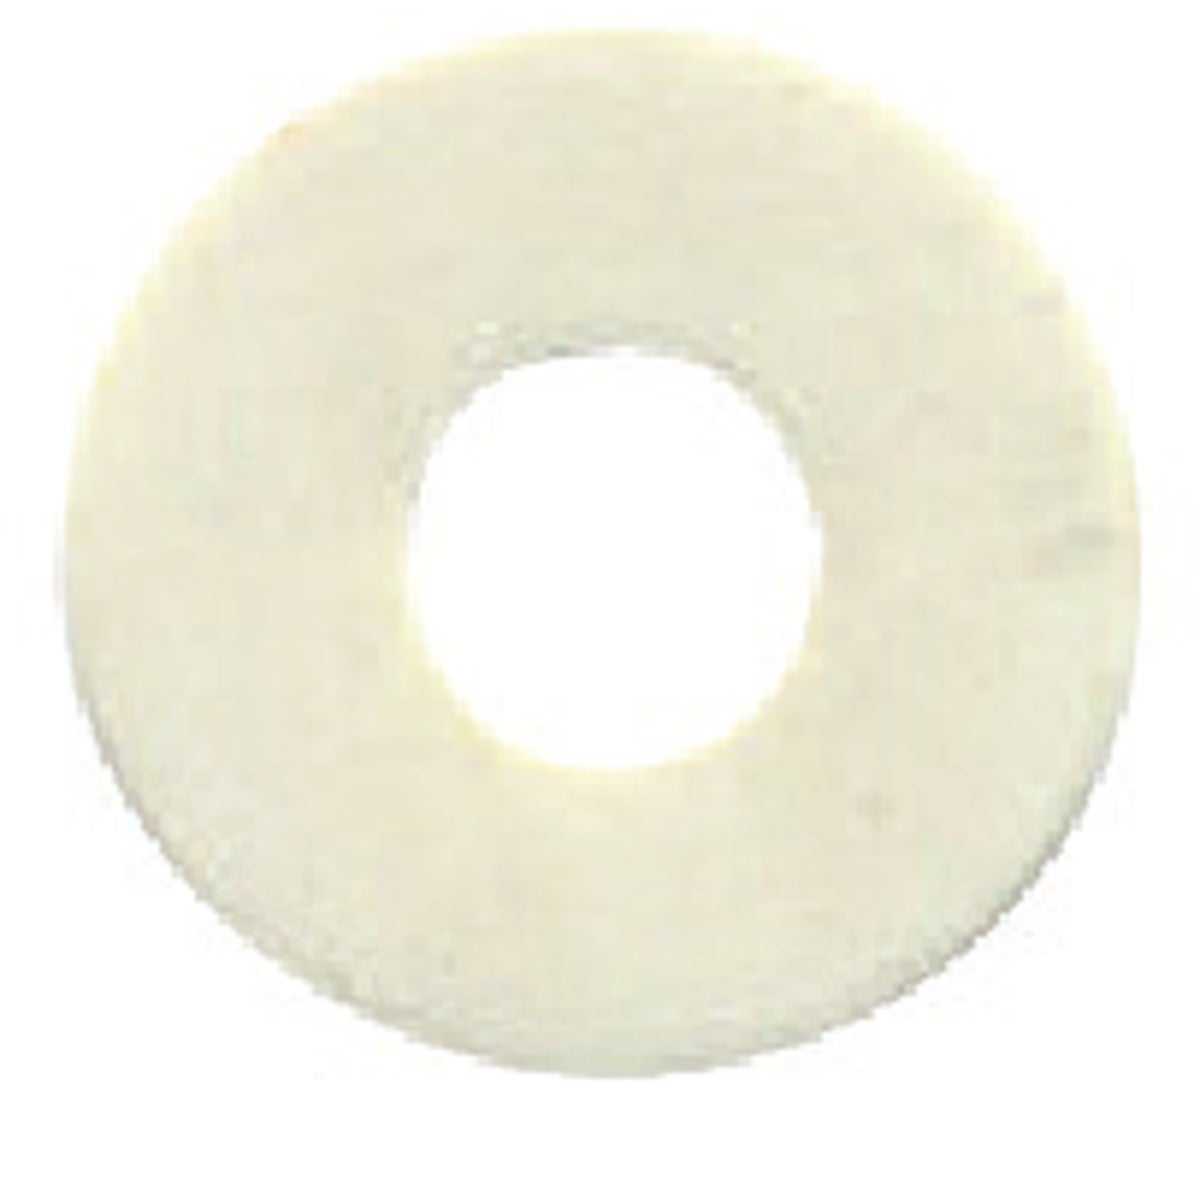 GASKET - 85659 by National Presto